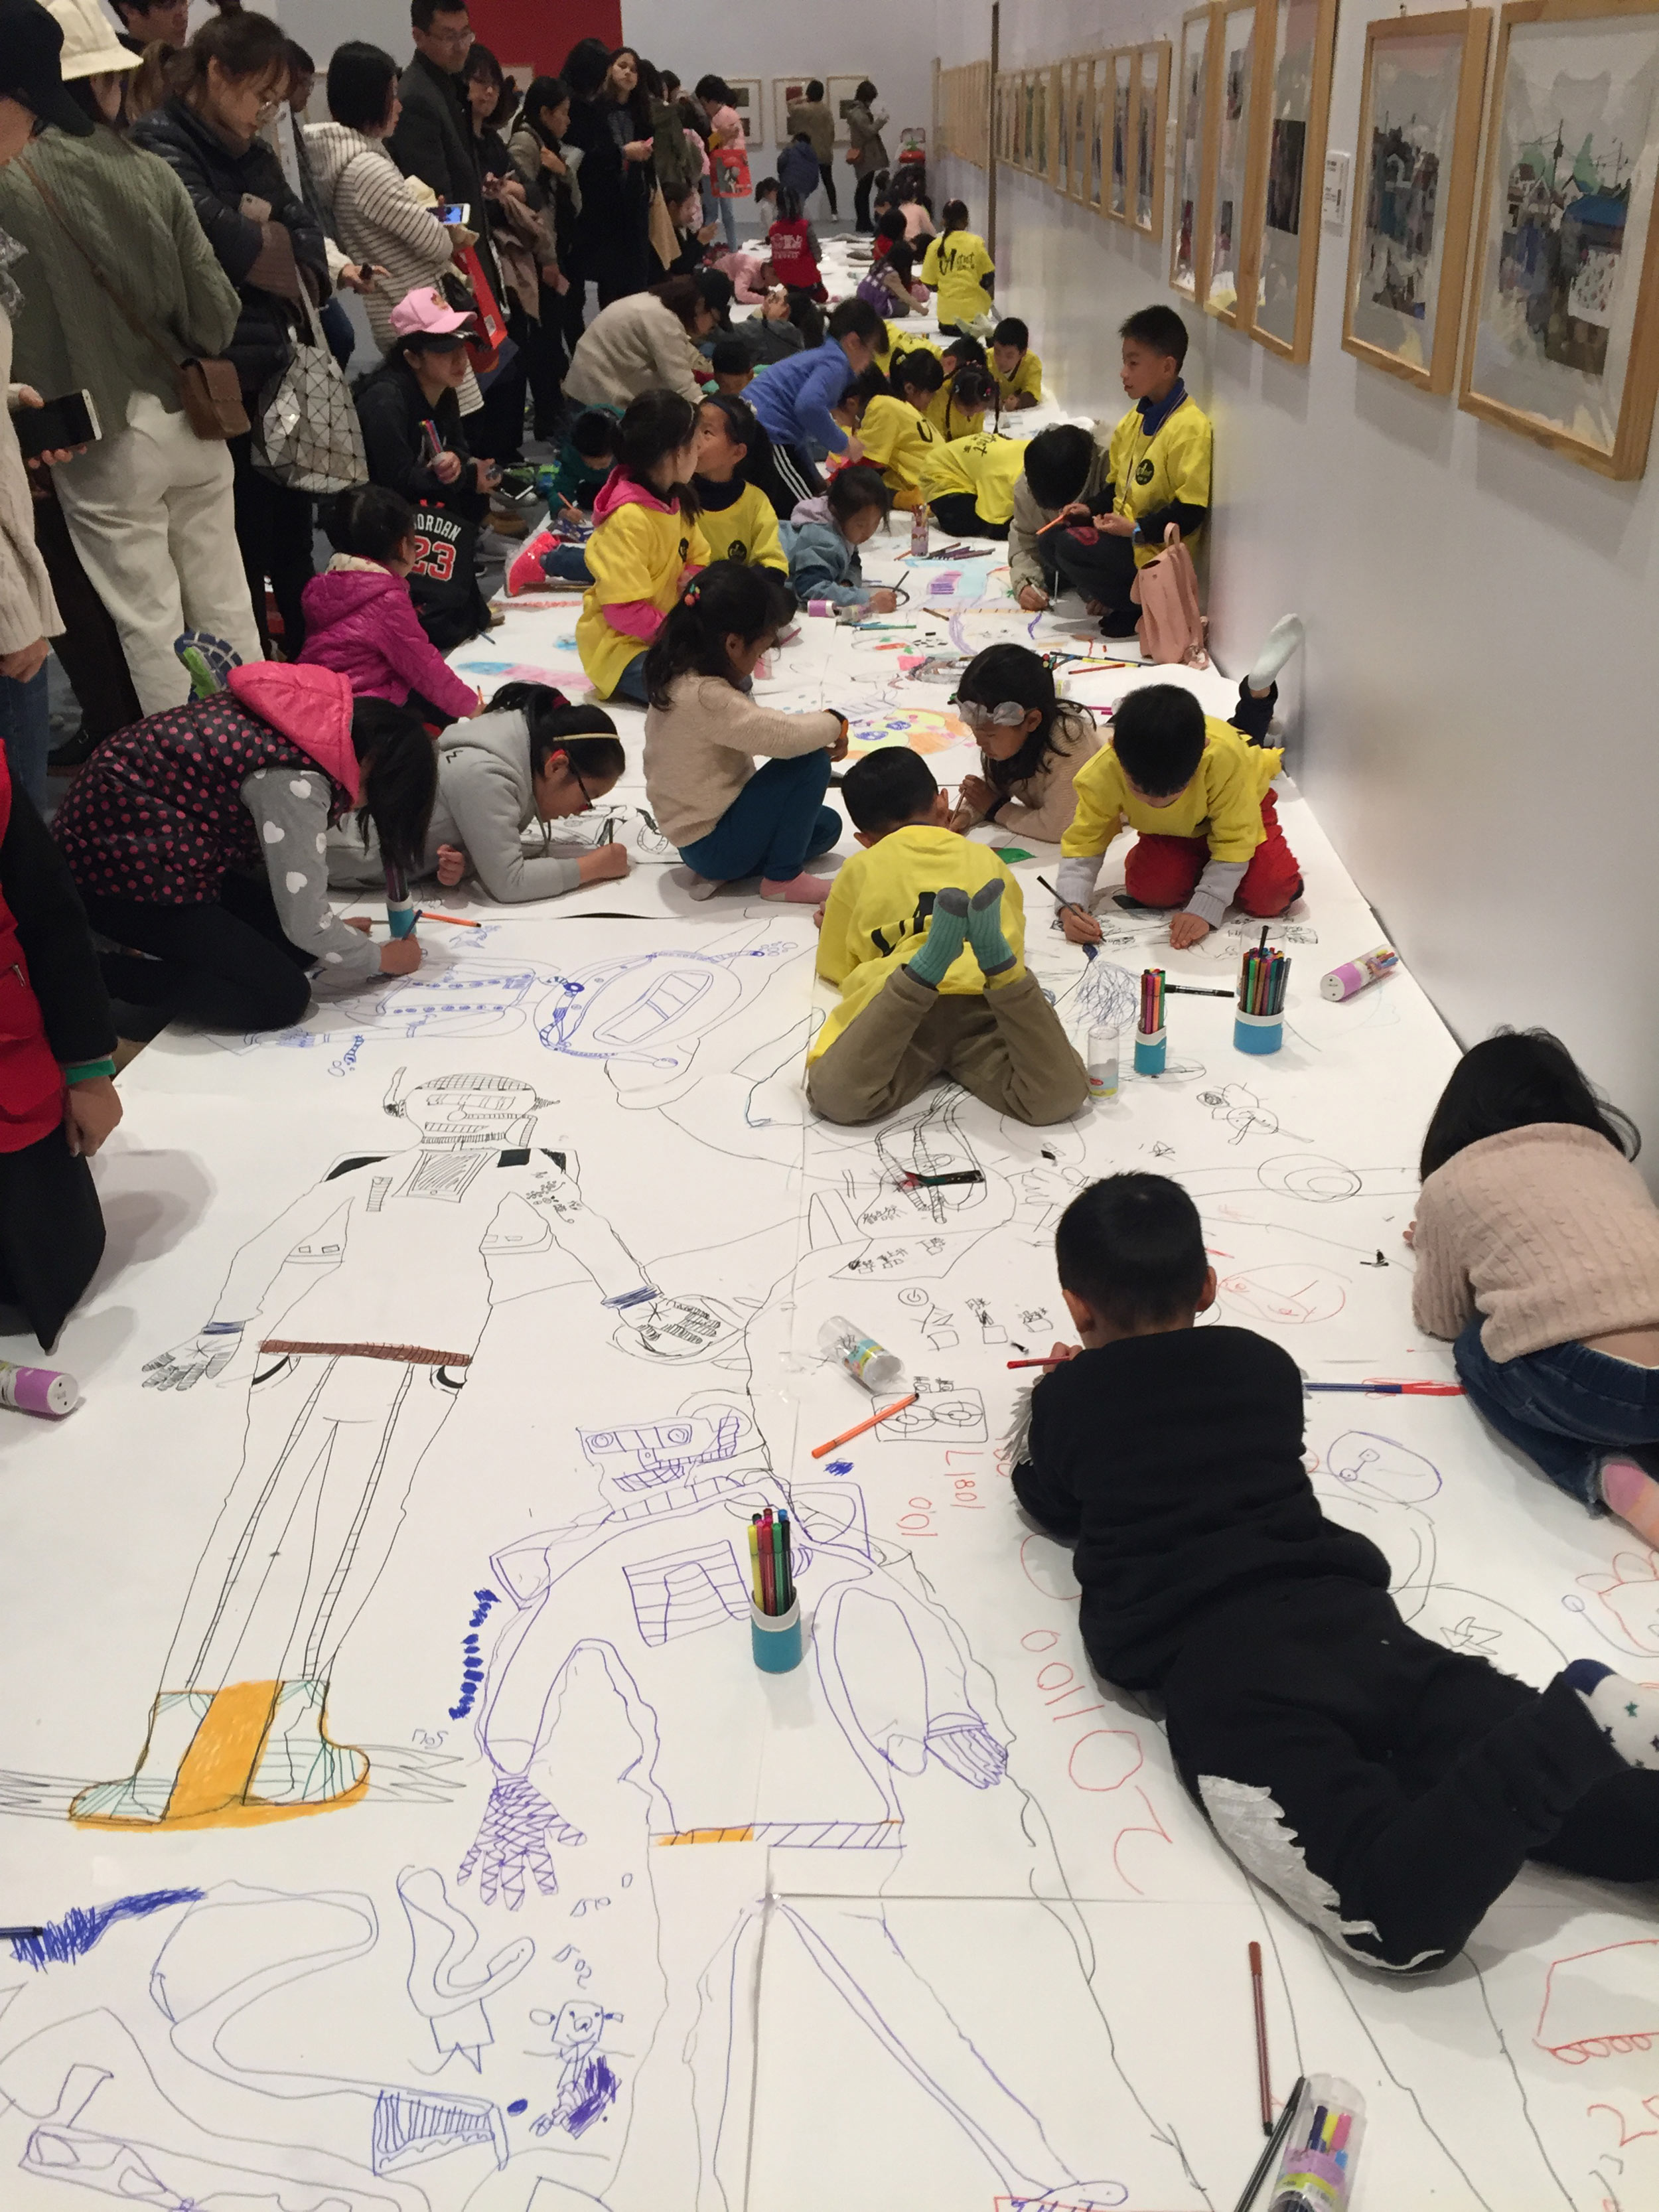 Workshop at Bologna Children's Illustration Exhibiton in Hangzhou, China